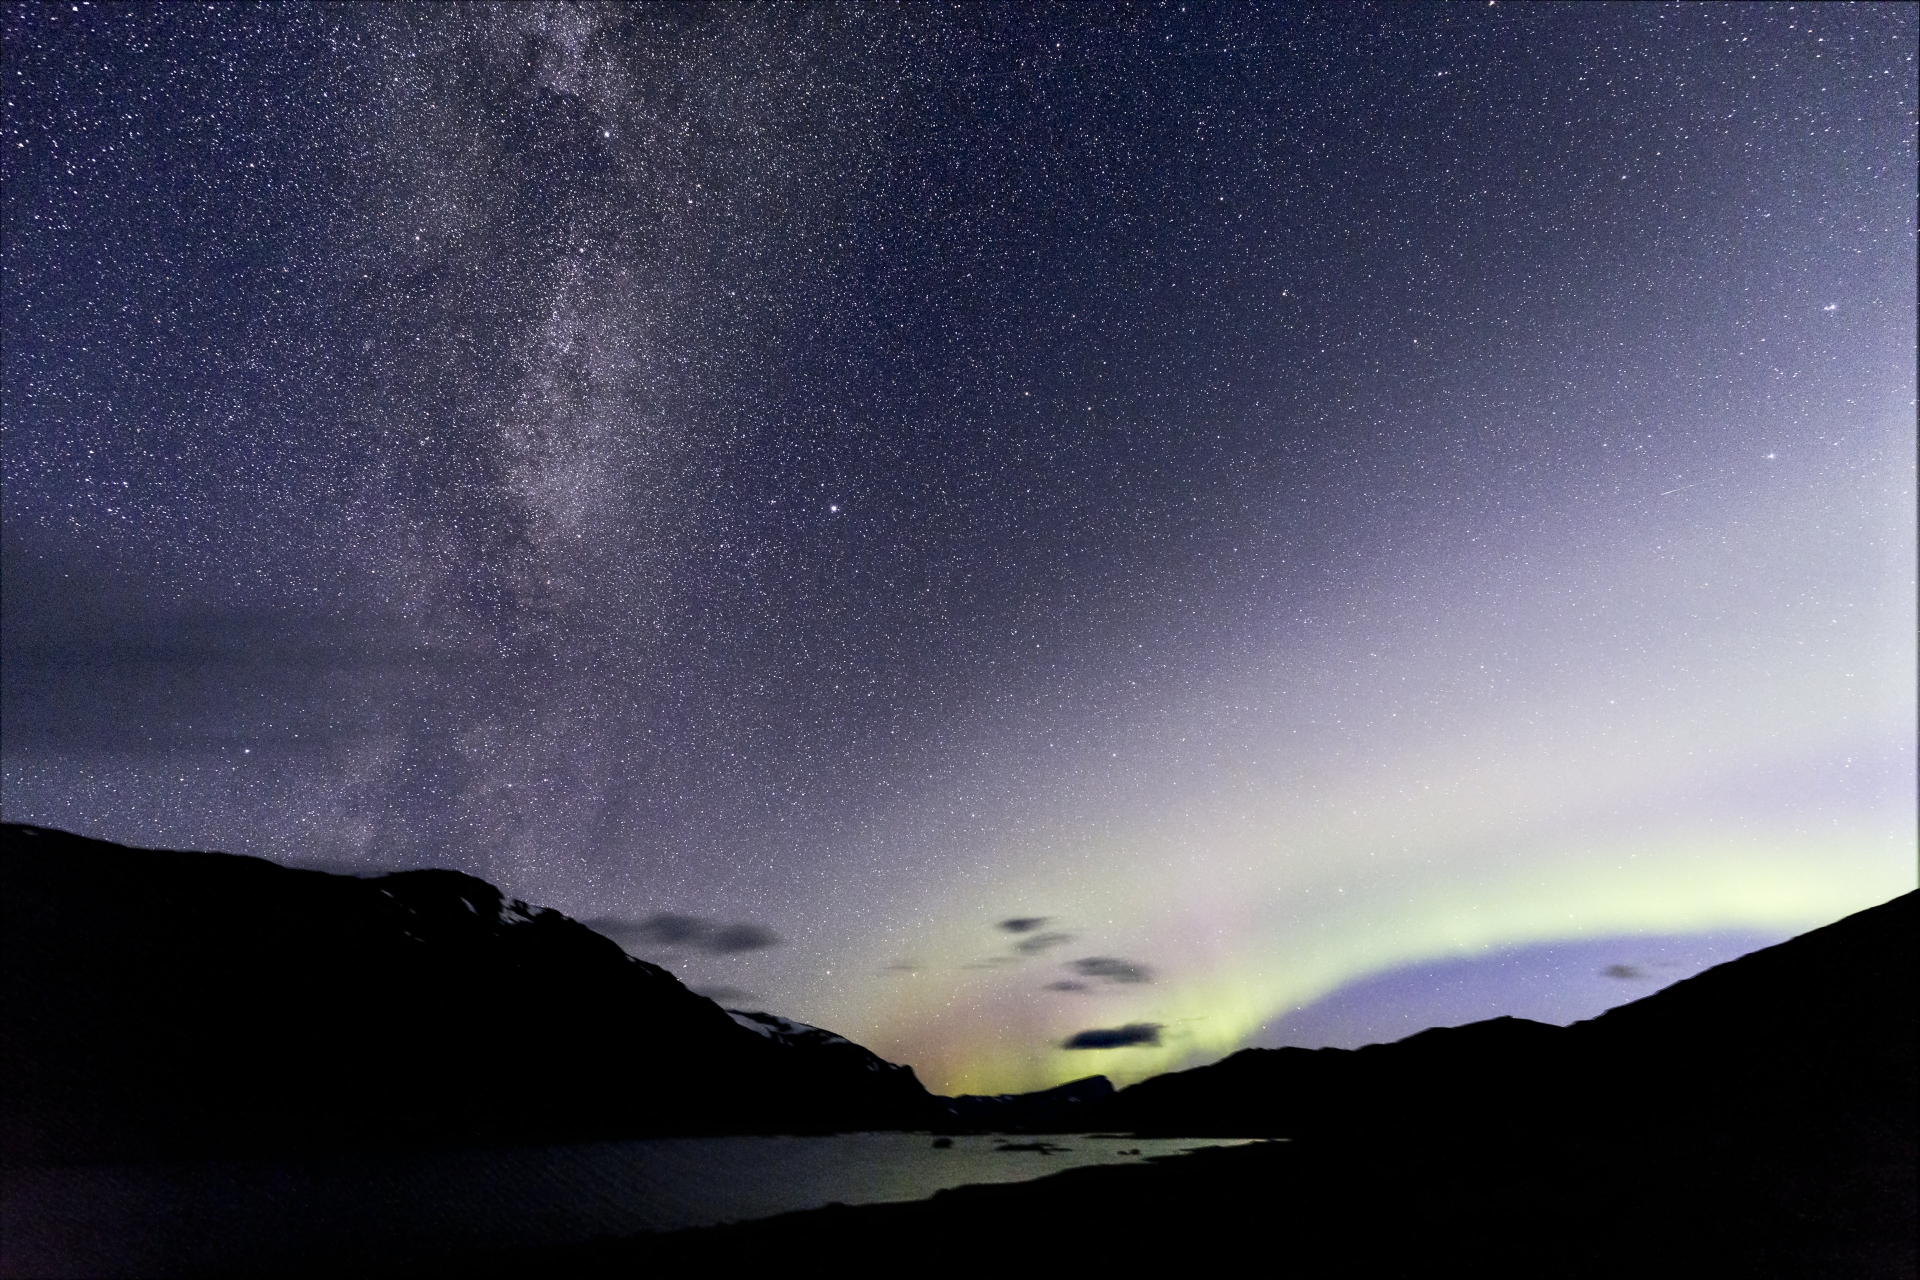 Milky Way and Aurora Borealis on Baugevatnet, © Markus Proske (stacked by Daniel J.)